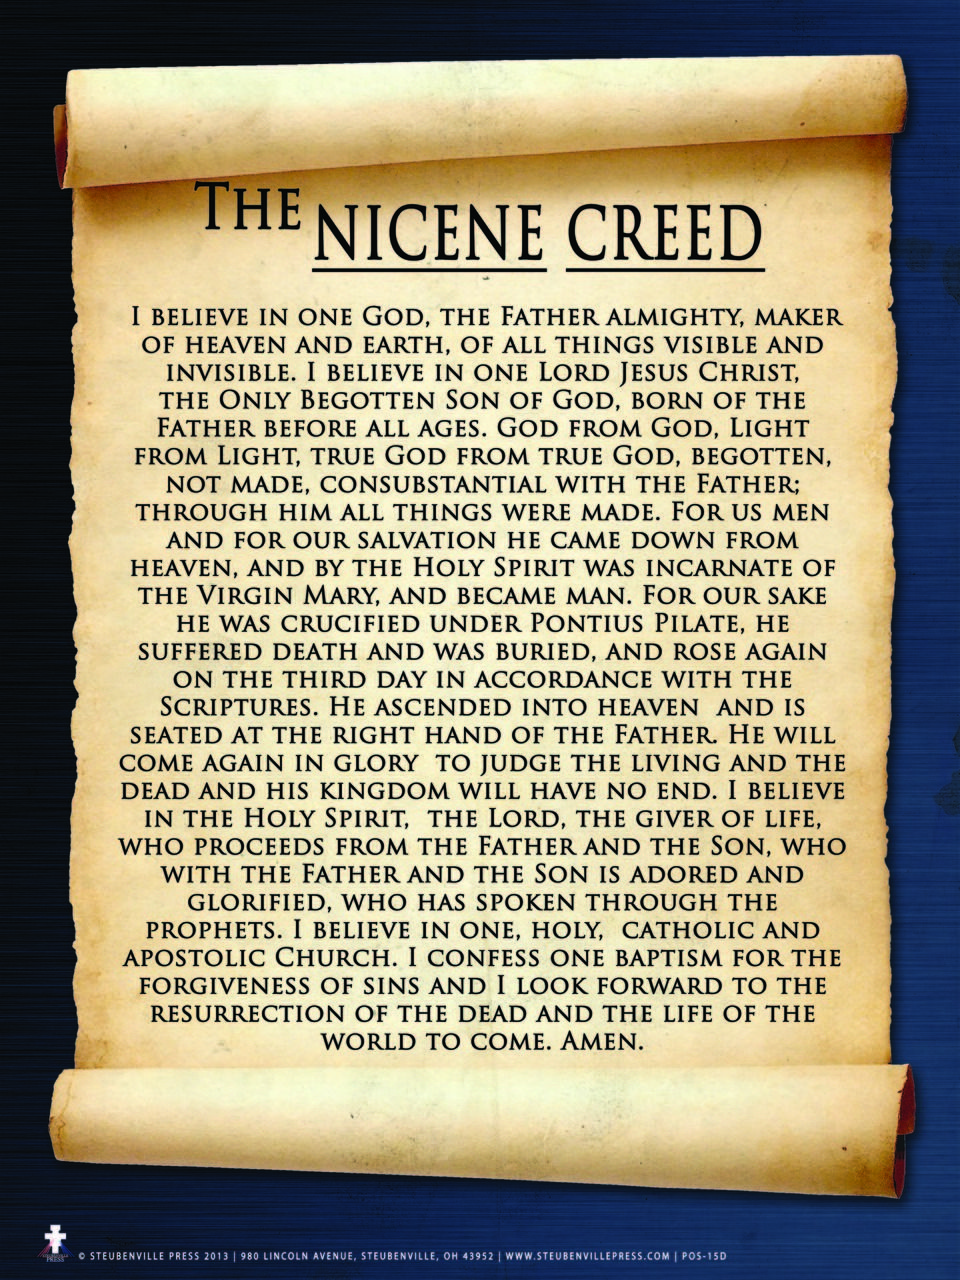 Nicene Creed Poster | Nicene creed, Catholic prayers daily, Nicene creed  catholic